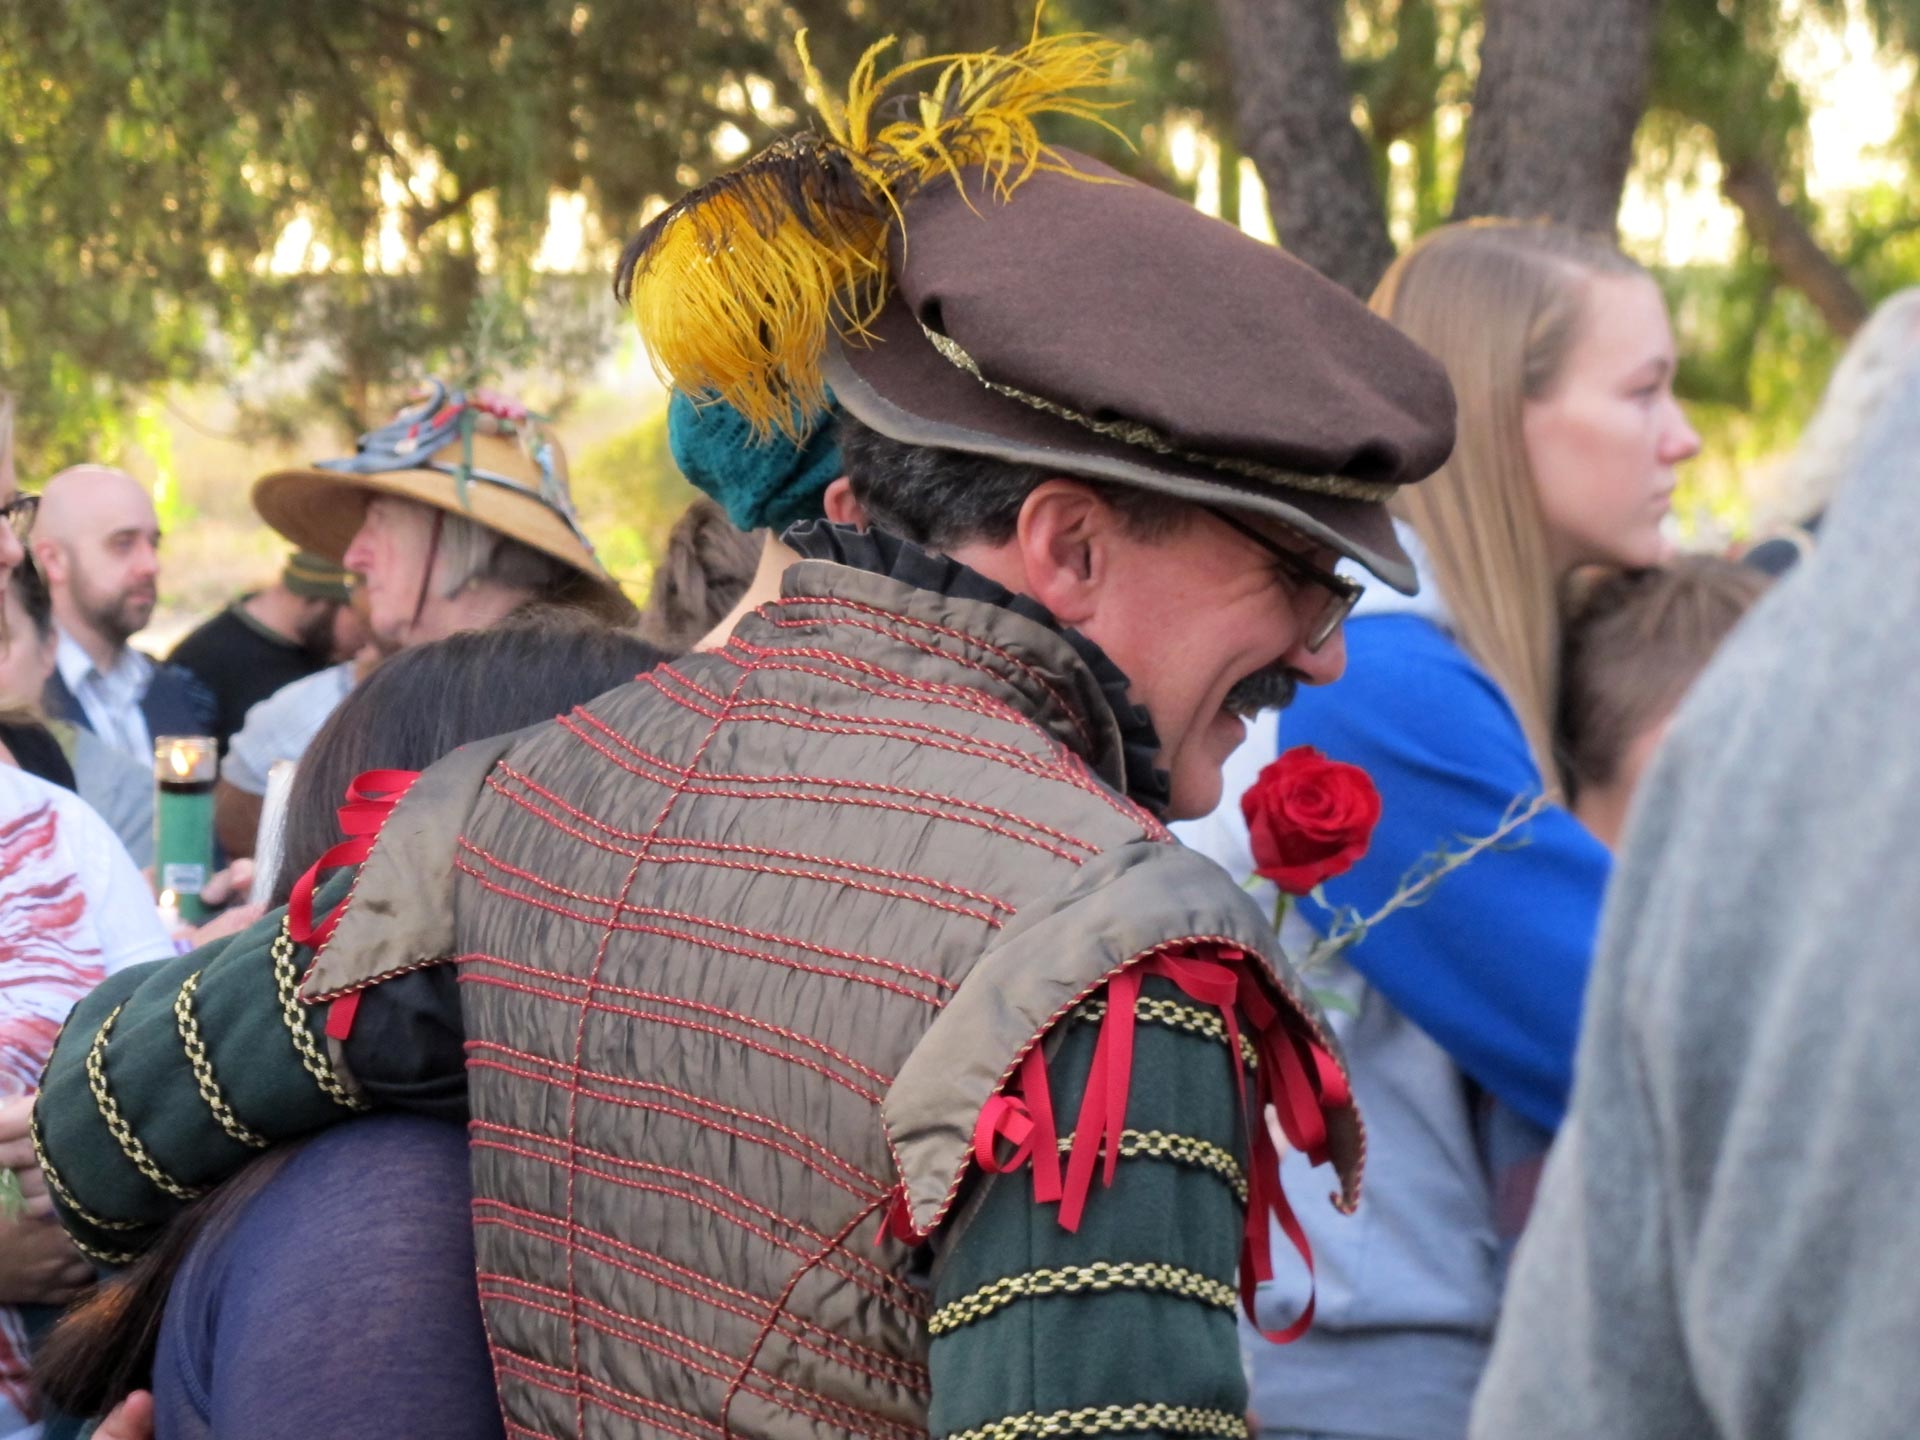 Some people showed up in costume to the Renaissance Pleasure Faire site in Irwindale to remember Larry Daniel Kaufman, a member of their community for more than a decade and a half.